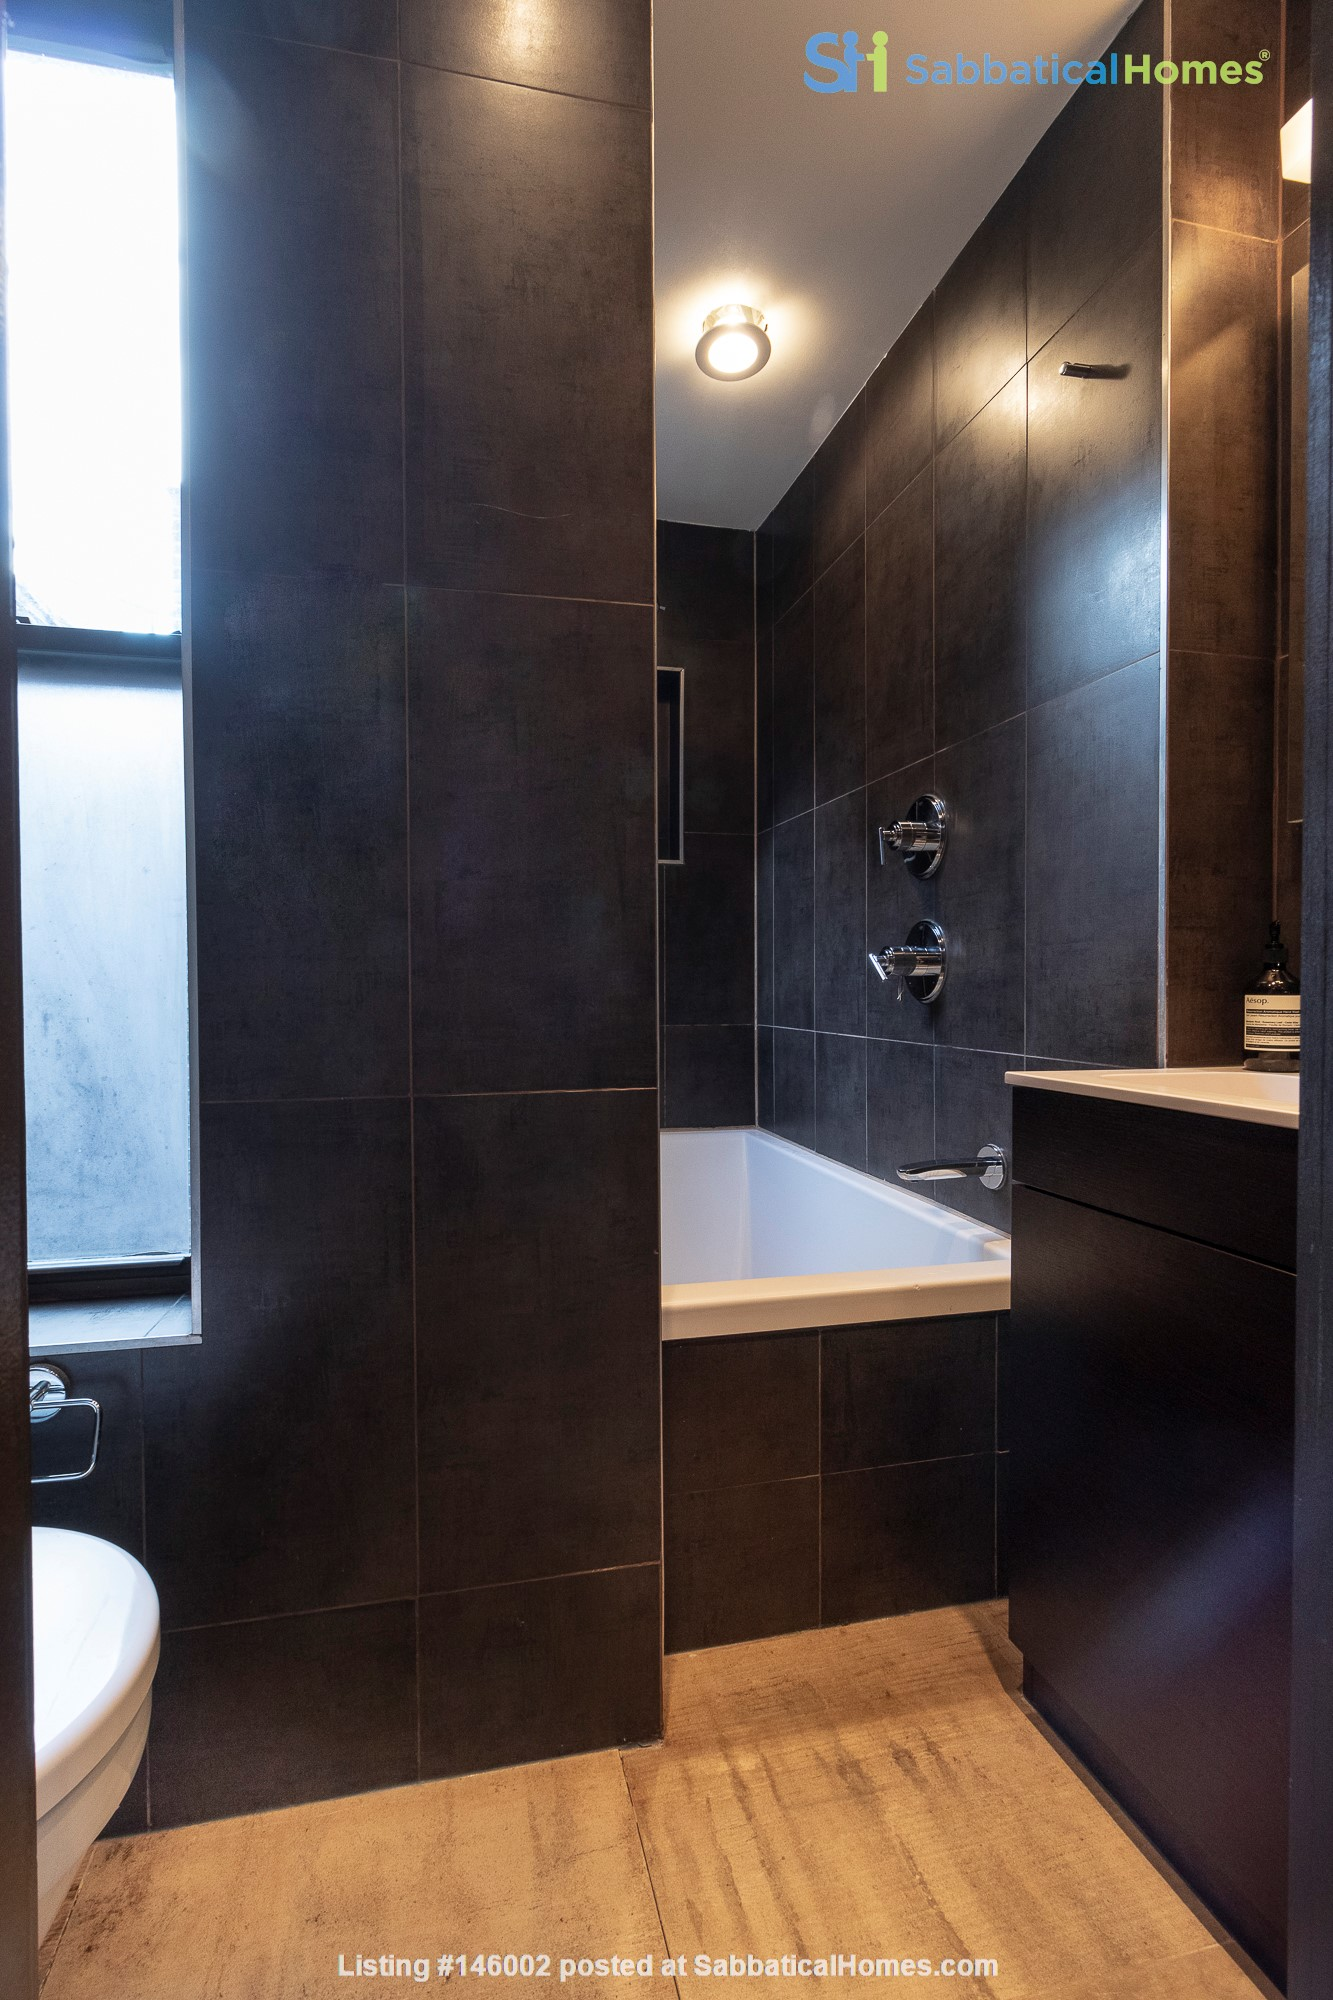 Newly renovated West Village unit in historic building with rooftop Home Rental in New York 6